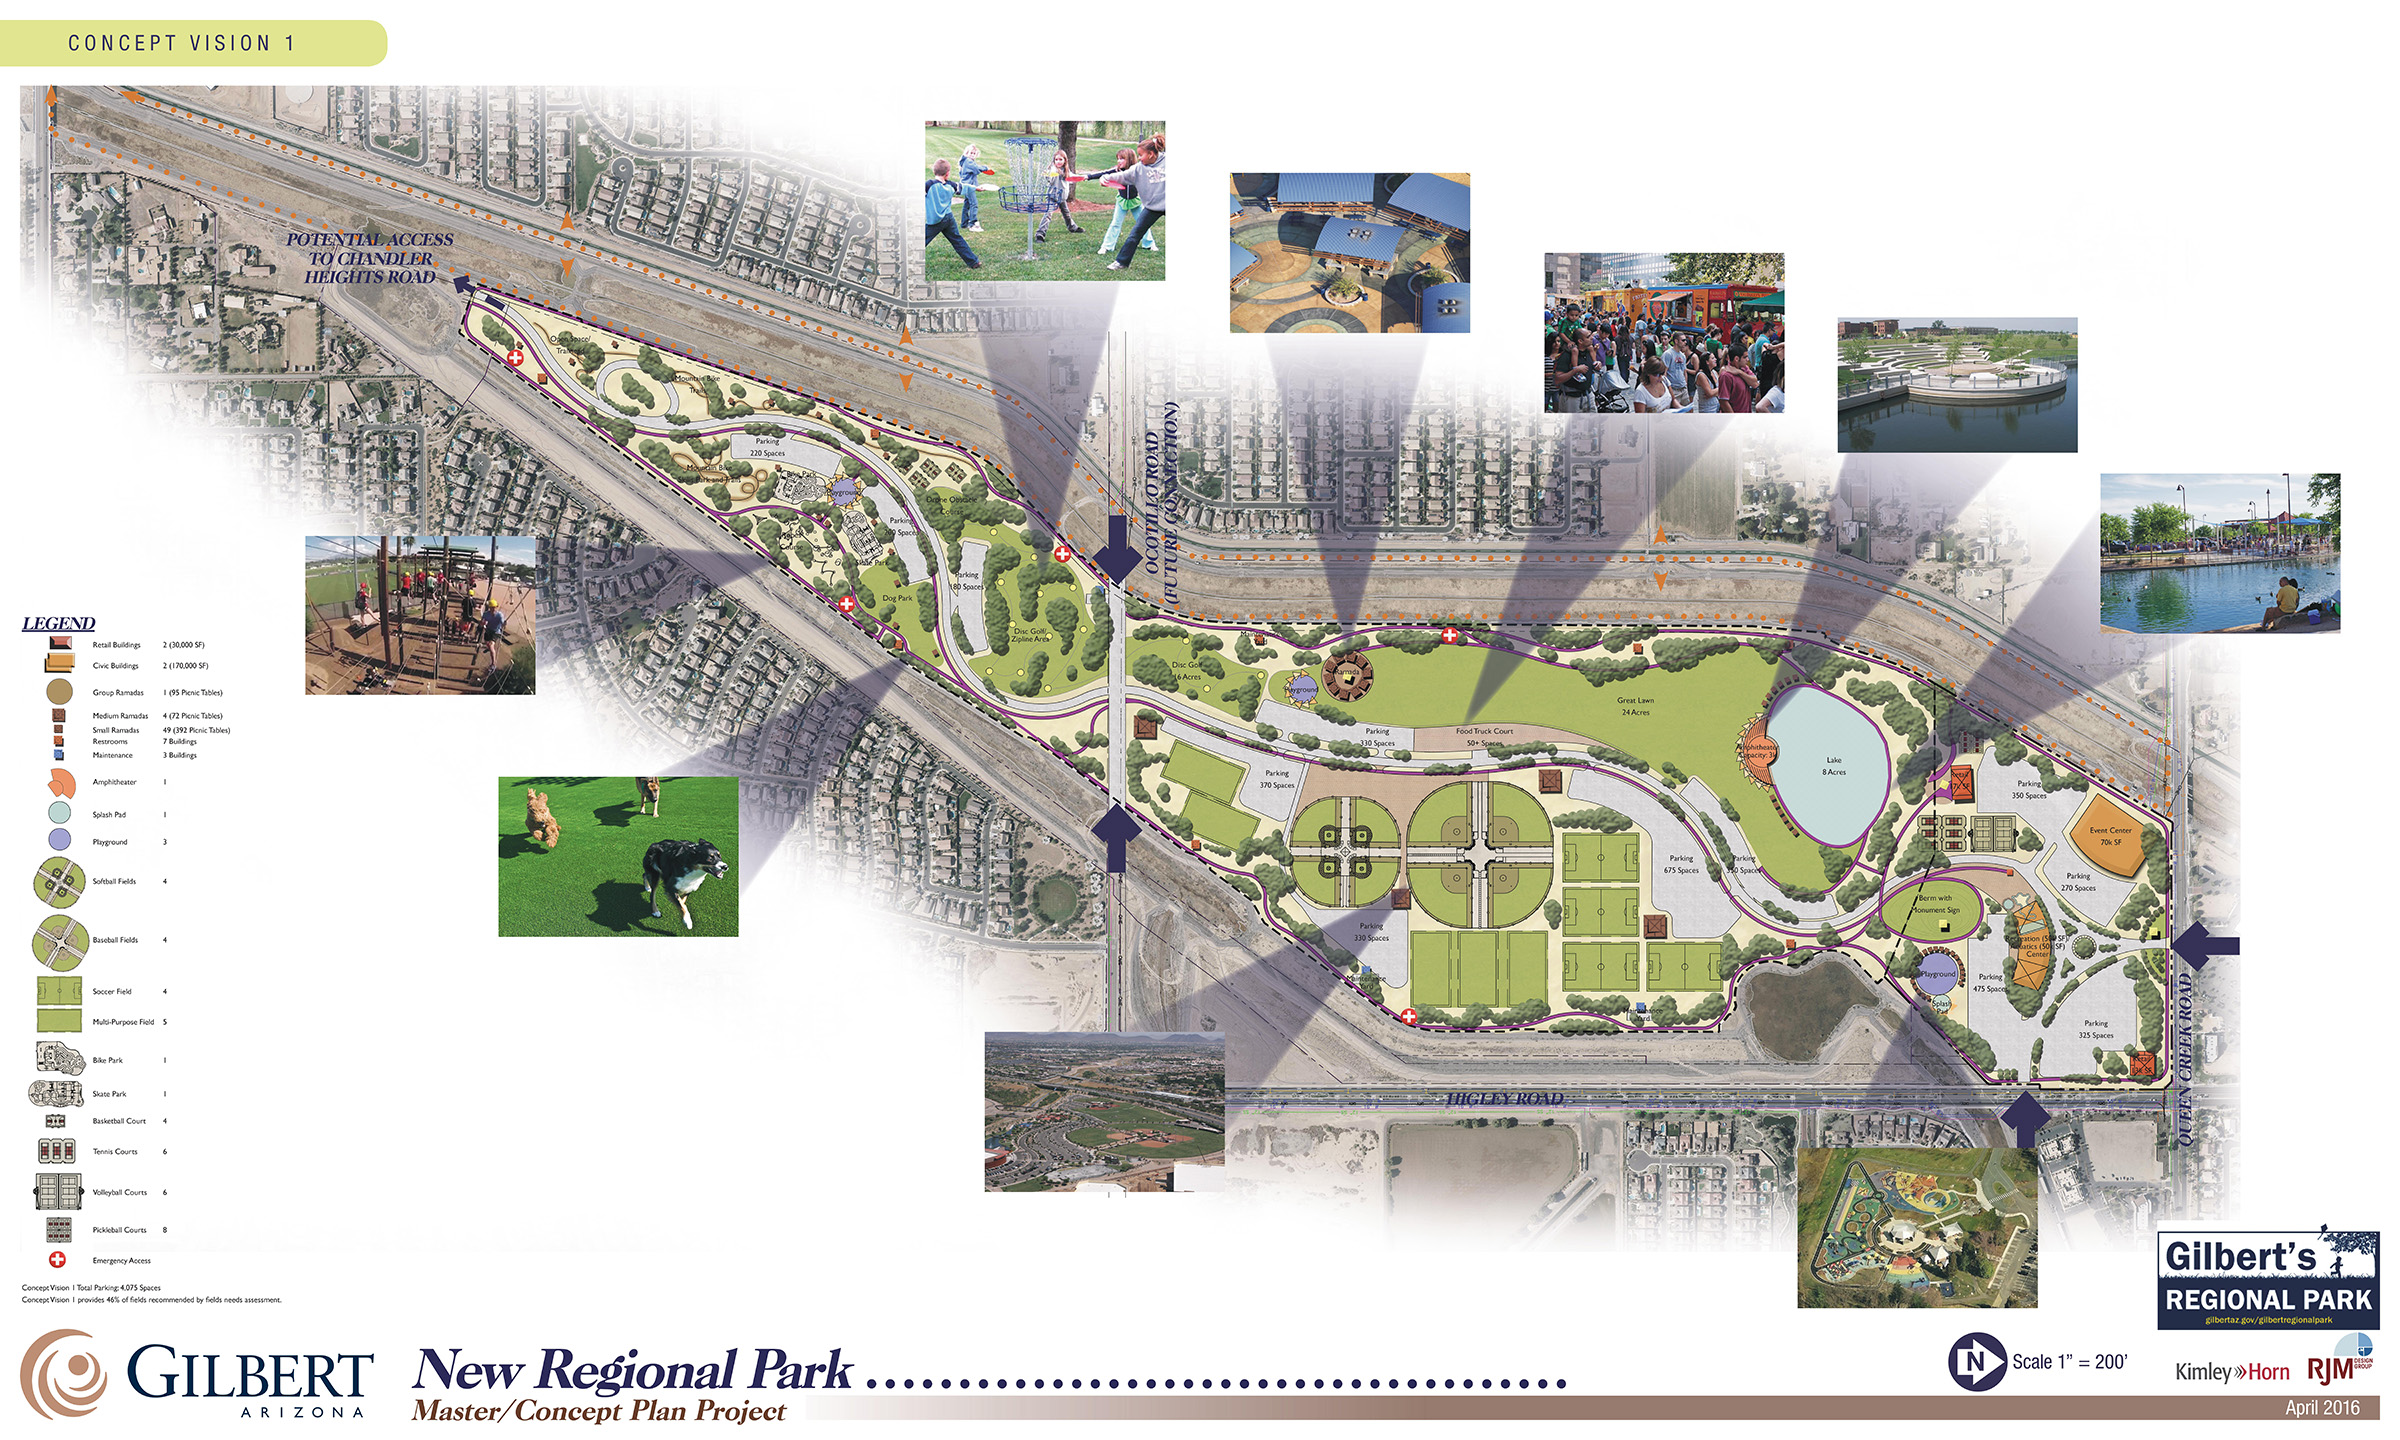 New Regional Park Coming To Gilbert